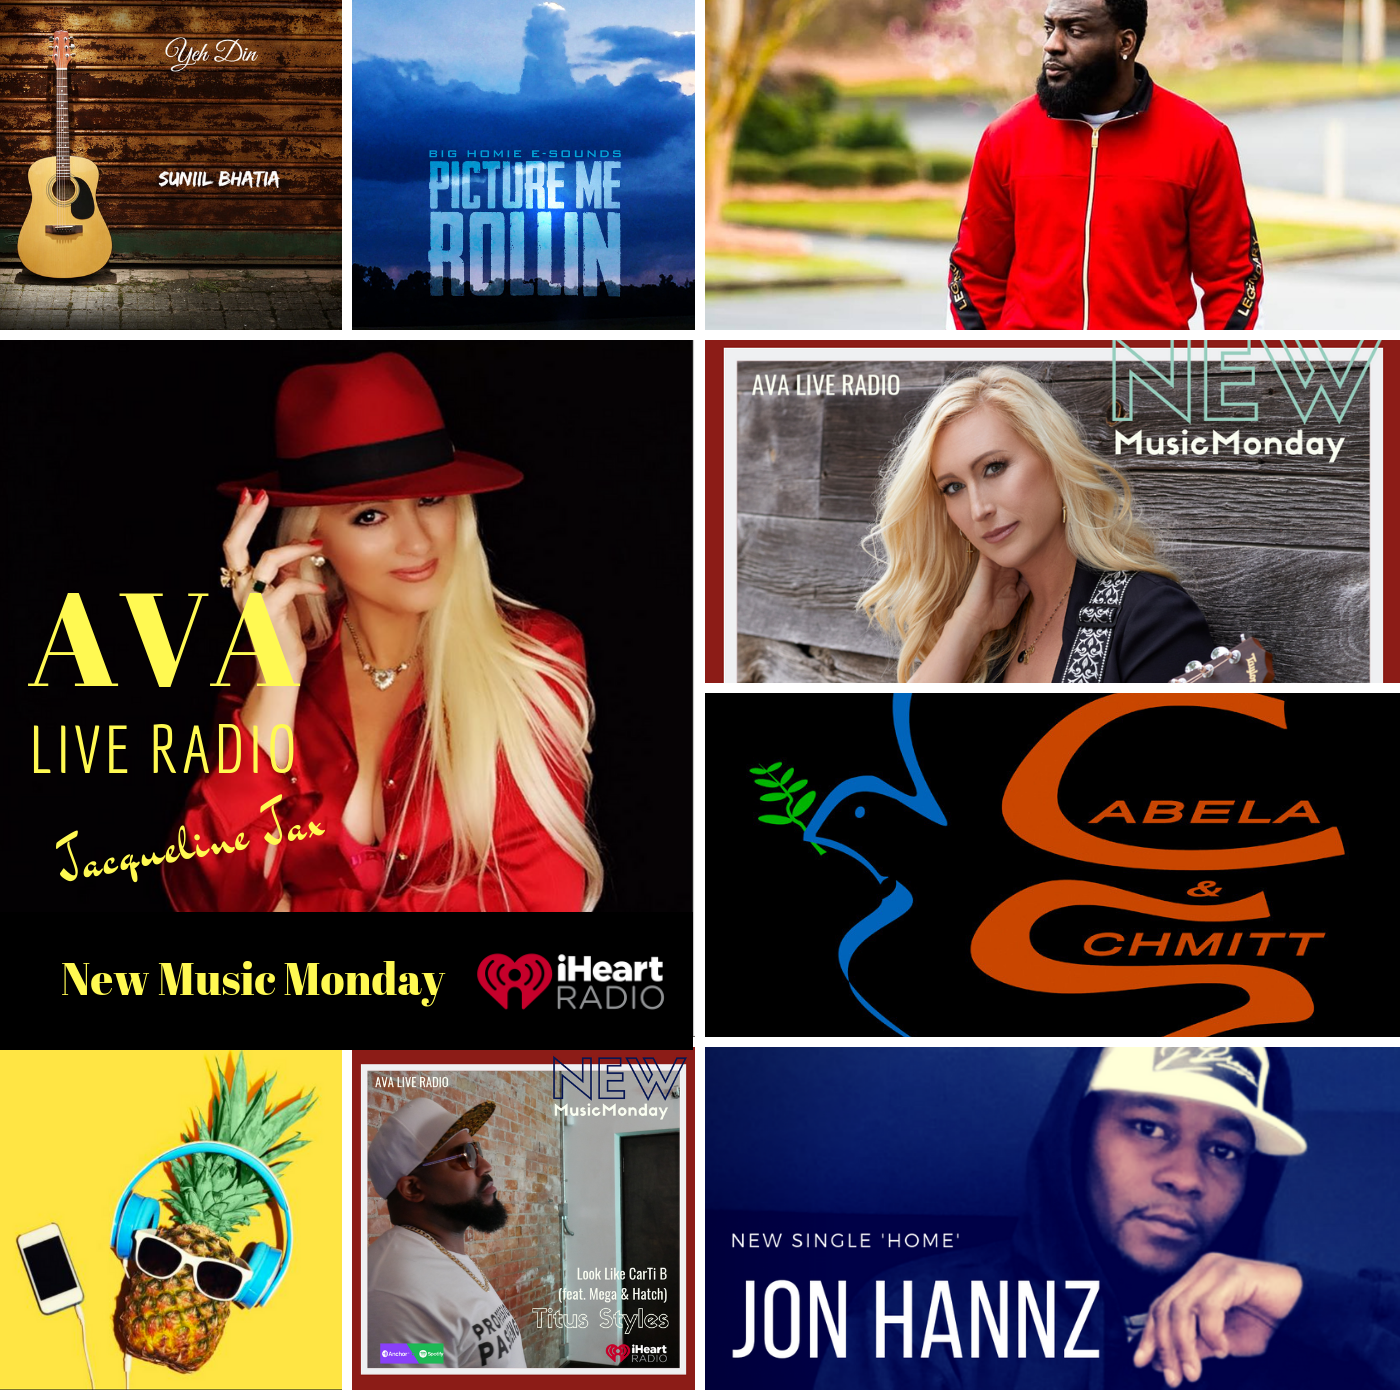 8.5 New Music Monday ava live radio.png